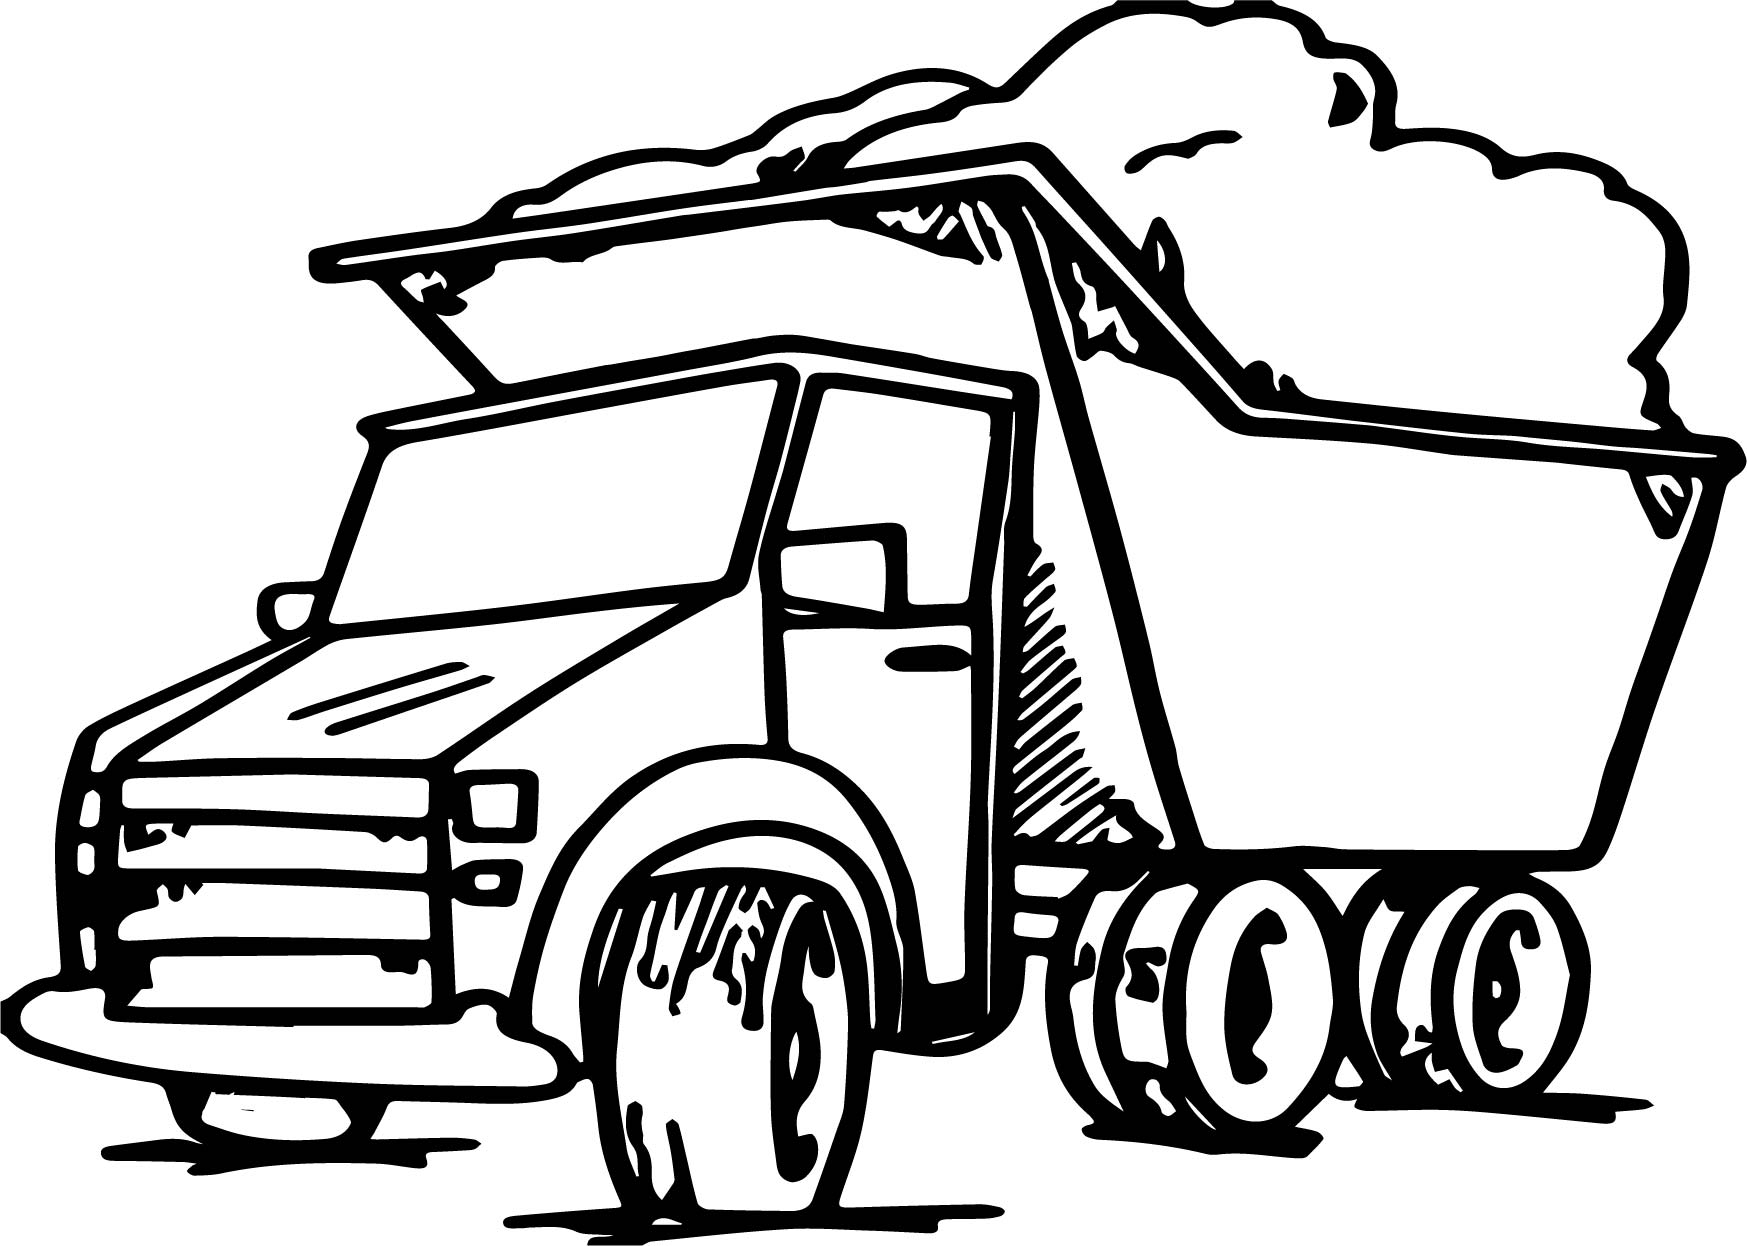 recycling truck coloring page garbage truck coloring pages for kids grbtrck garbage page coloring truck recycling